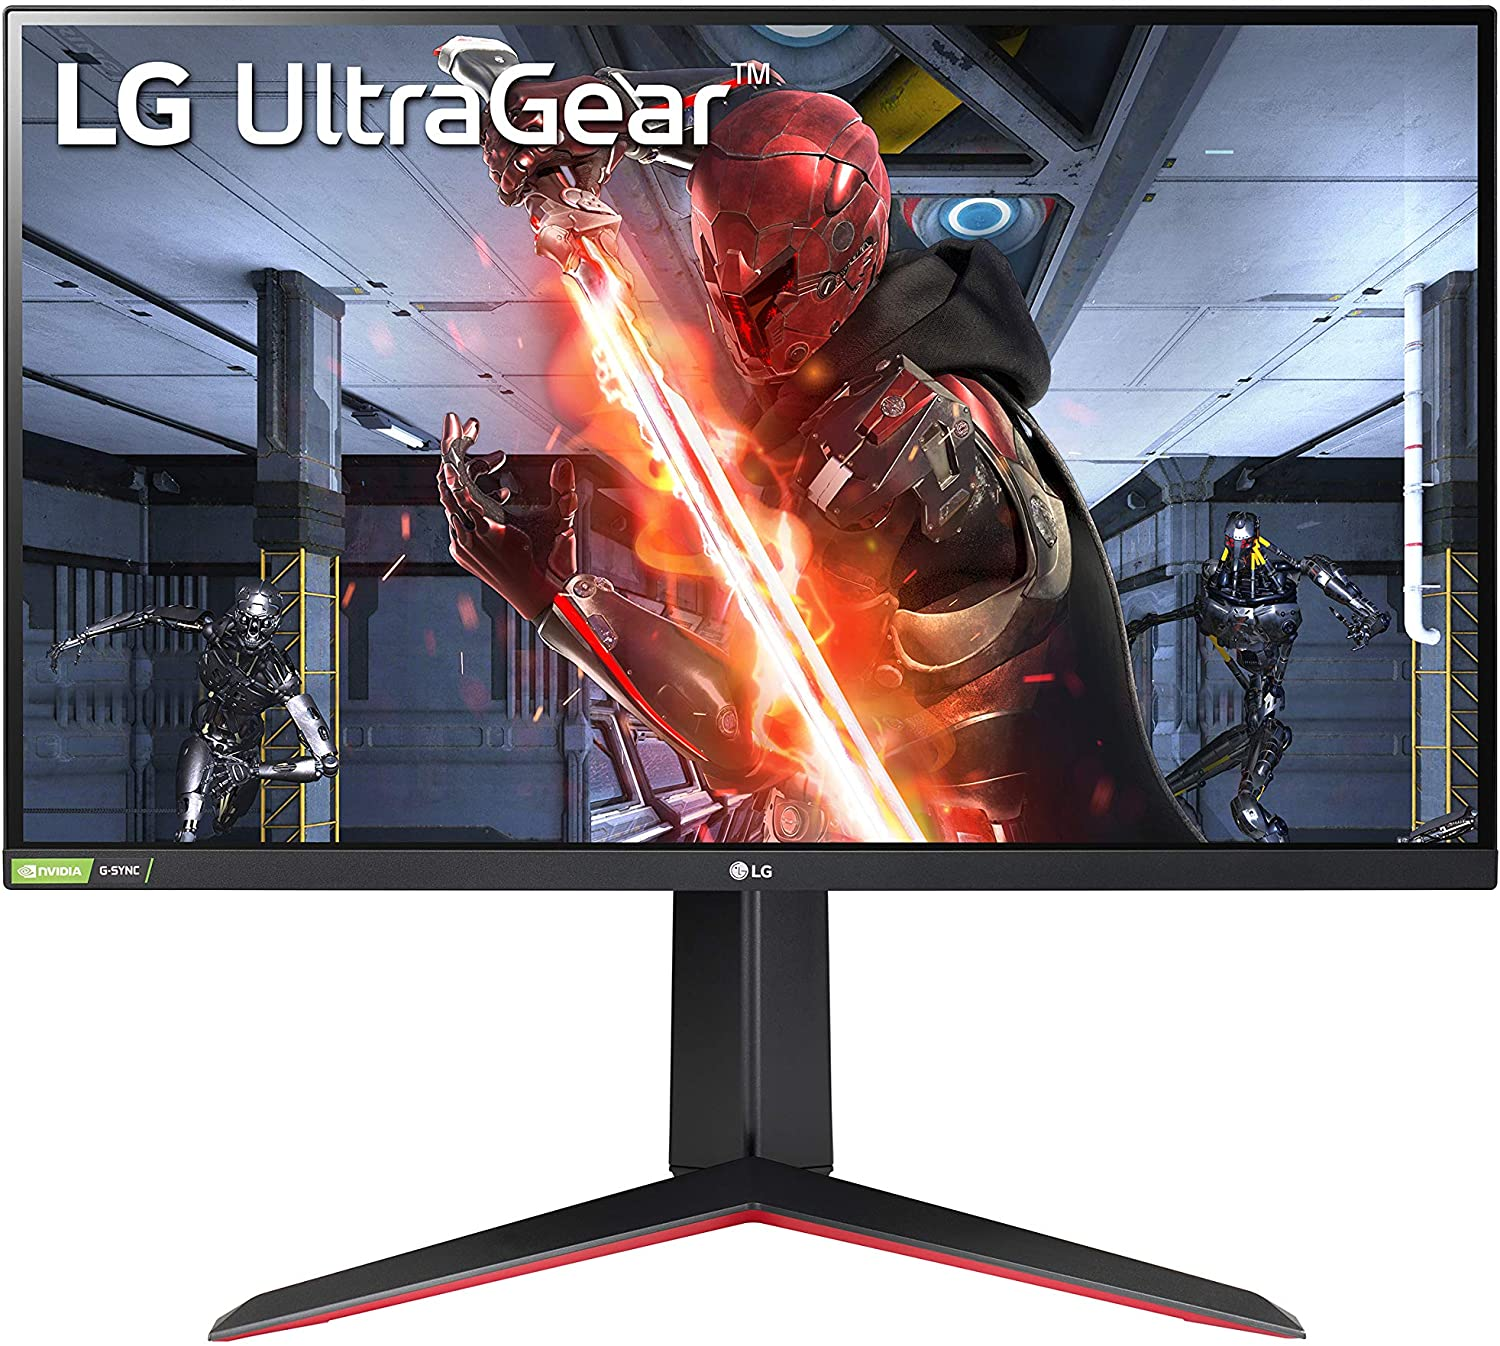 """LG 27GN650-B 27"""" Ultragear Full HD (1920 x 1080) IPS Gaming Monitor with 144Hz Refresh Rate with 1ms NVIDIA G-SYNC Compatible with AMD FreeSync Premium and Tilt/Height/Pivot Adjustable Stand, black"""